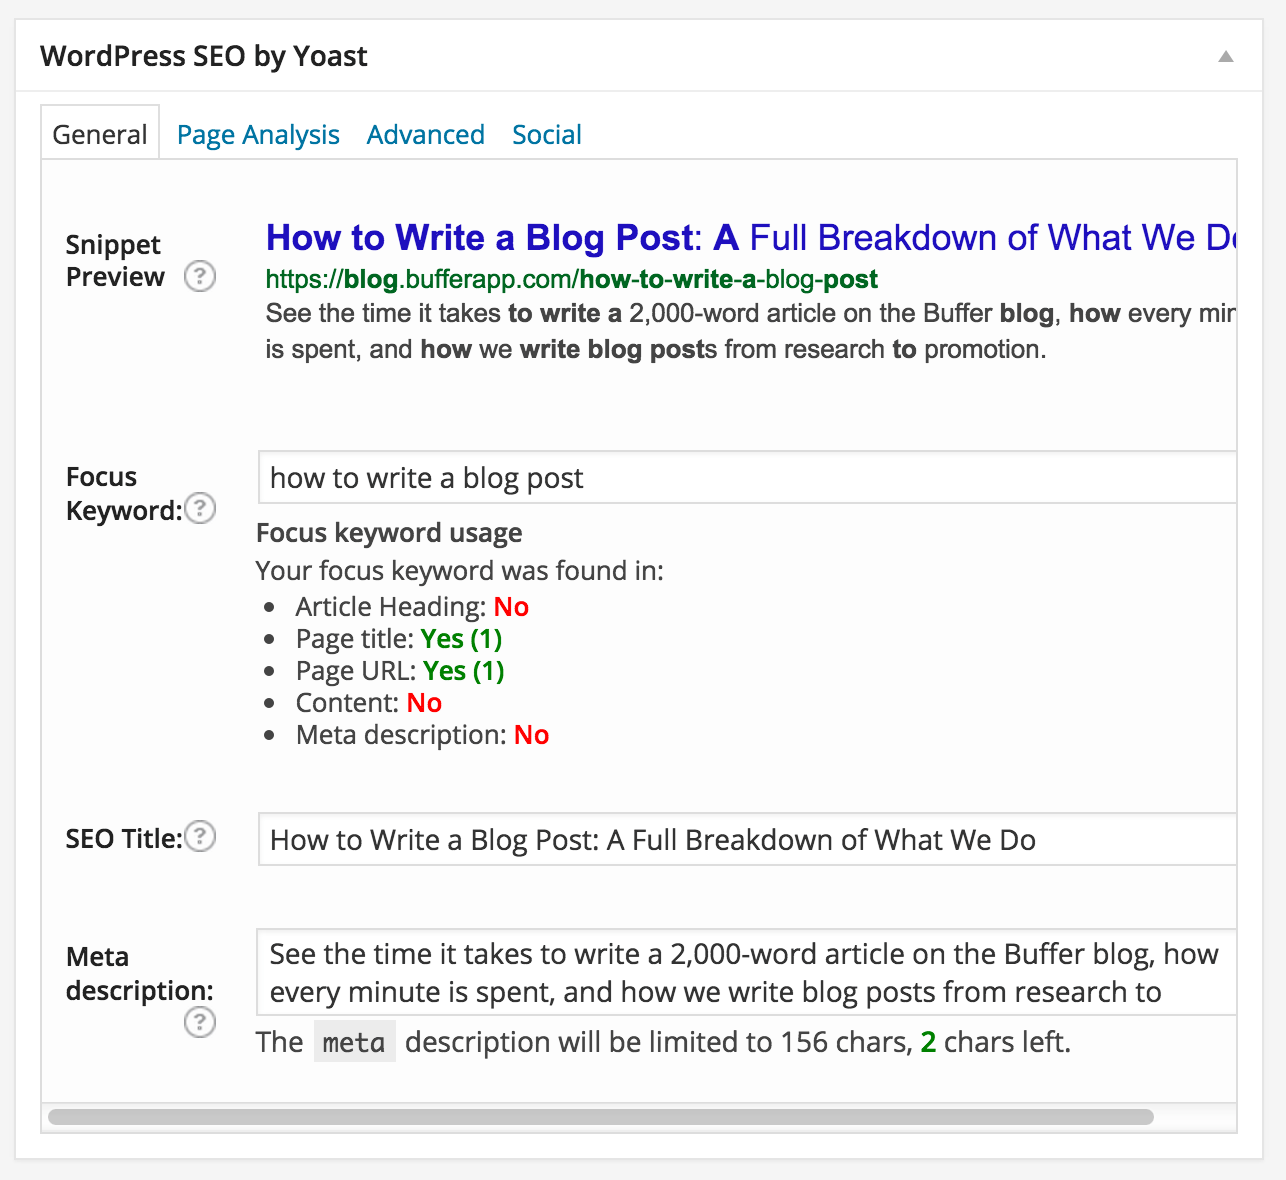 015 Yoast Seo Research Paper Fast Way To Write Dreaded A How Outline In Apa Format 6th Edition Proposal Full